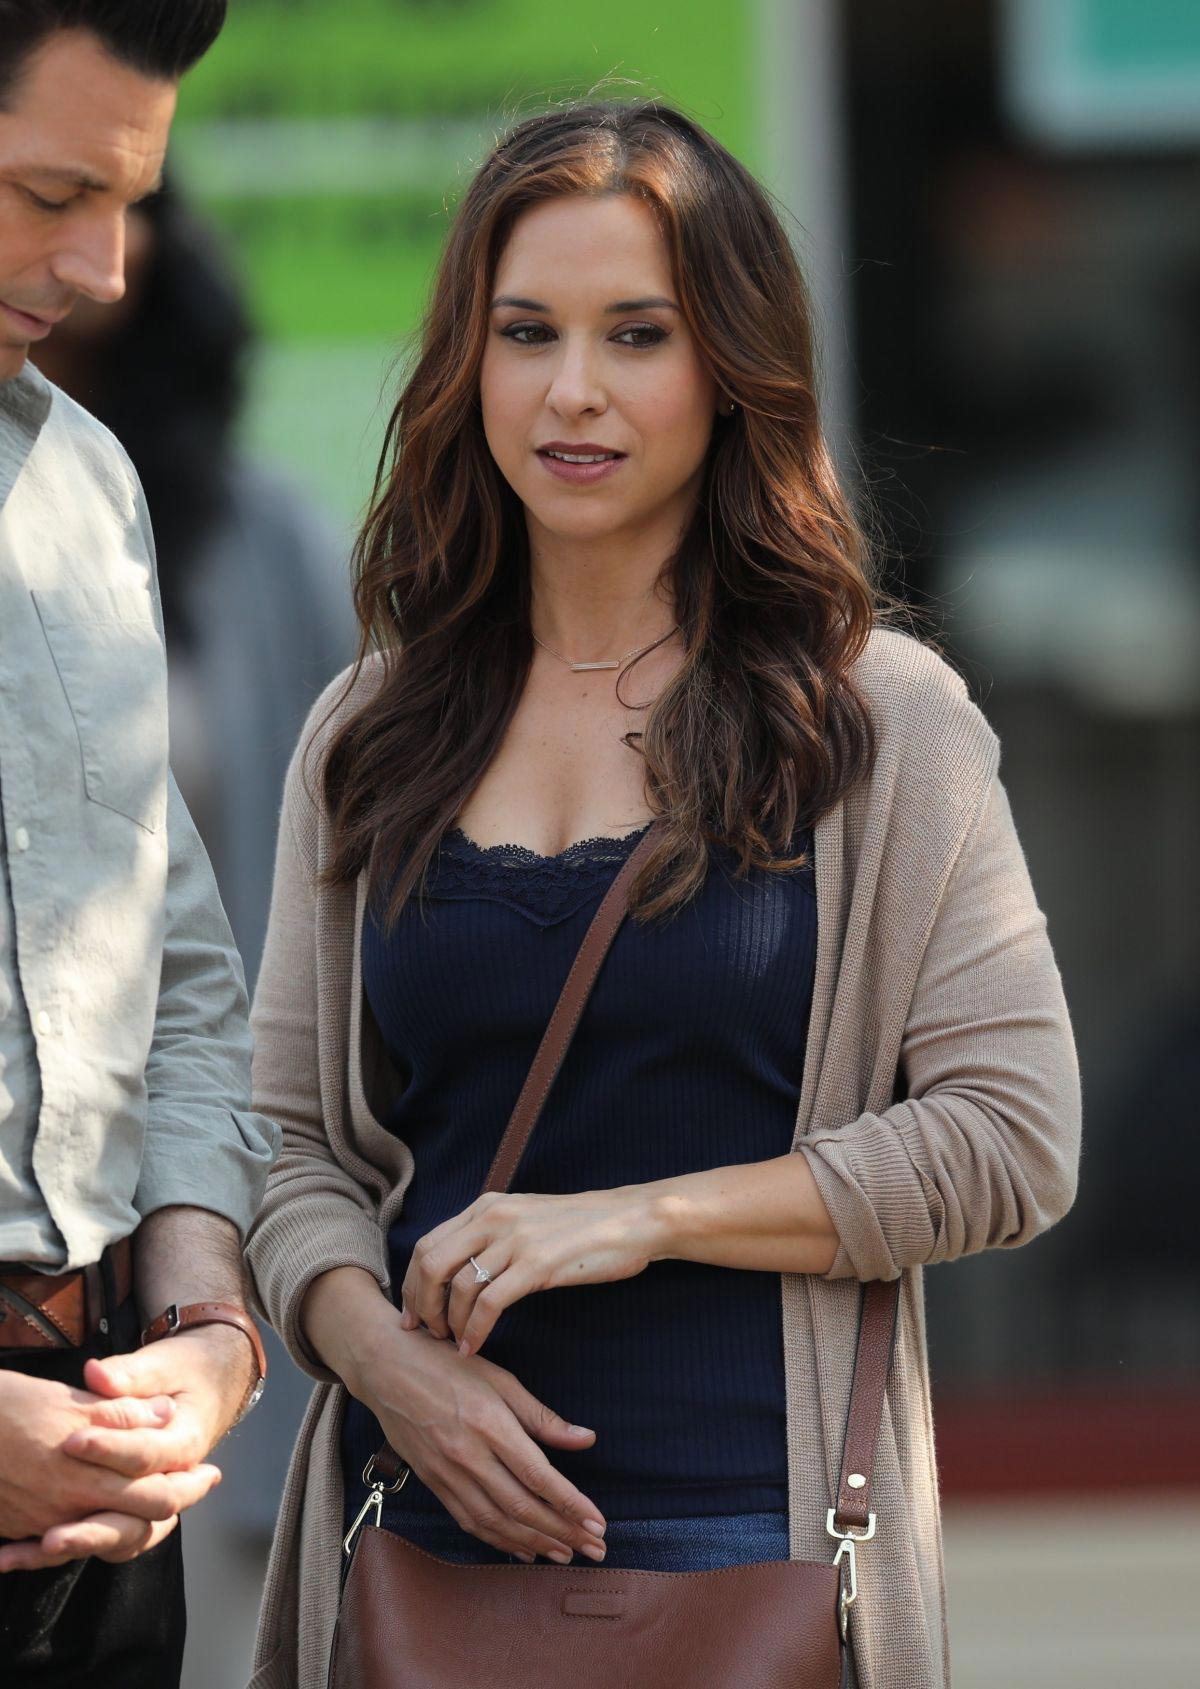 Lacey Chabert Wedding.Lacey Chabert On The Set Of All Of My Heart The Wedding In